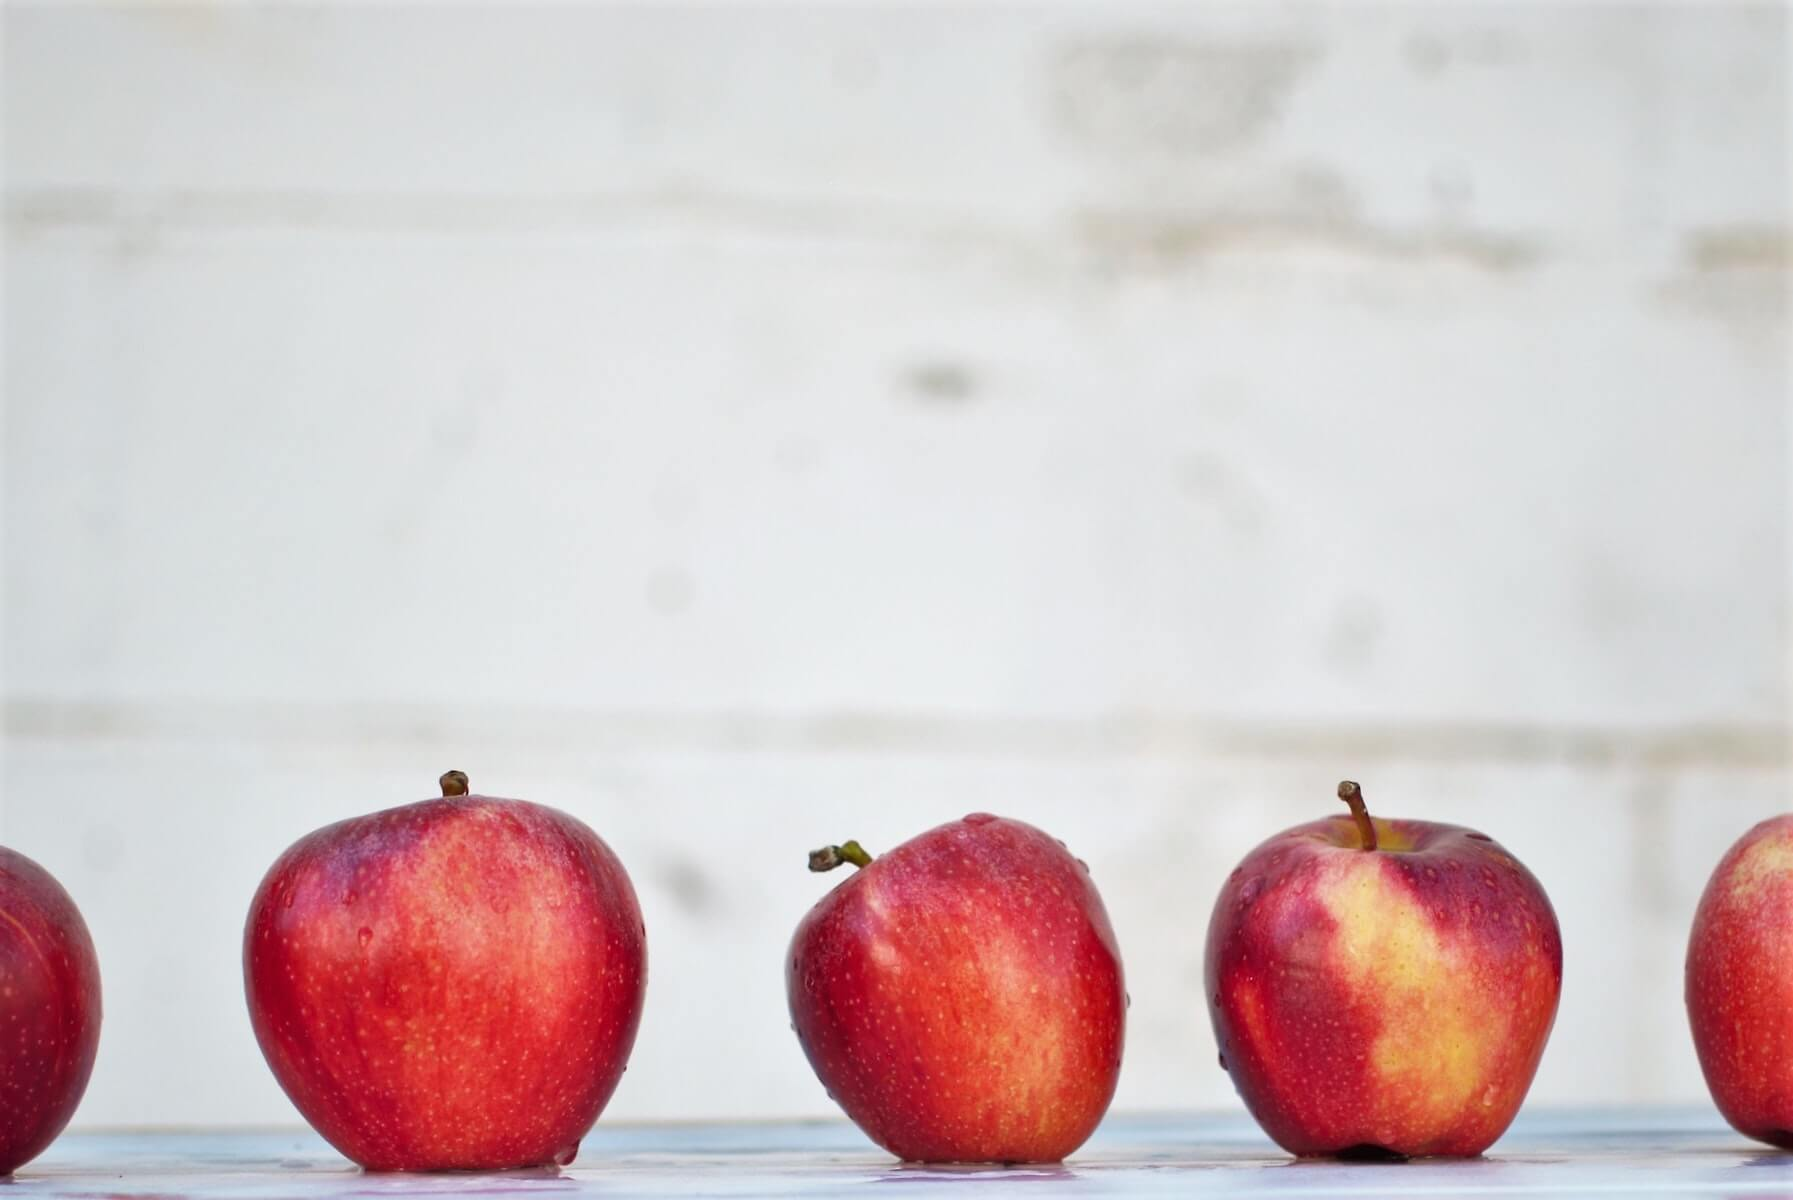 row of red apples on retaining wall with blurry wall in background school nursing